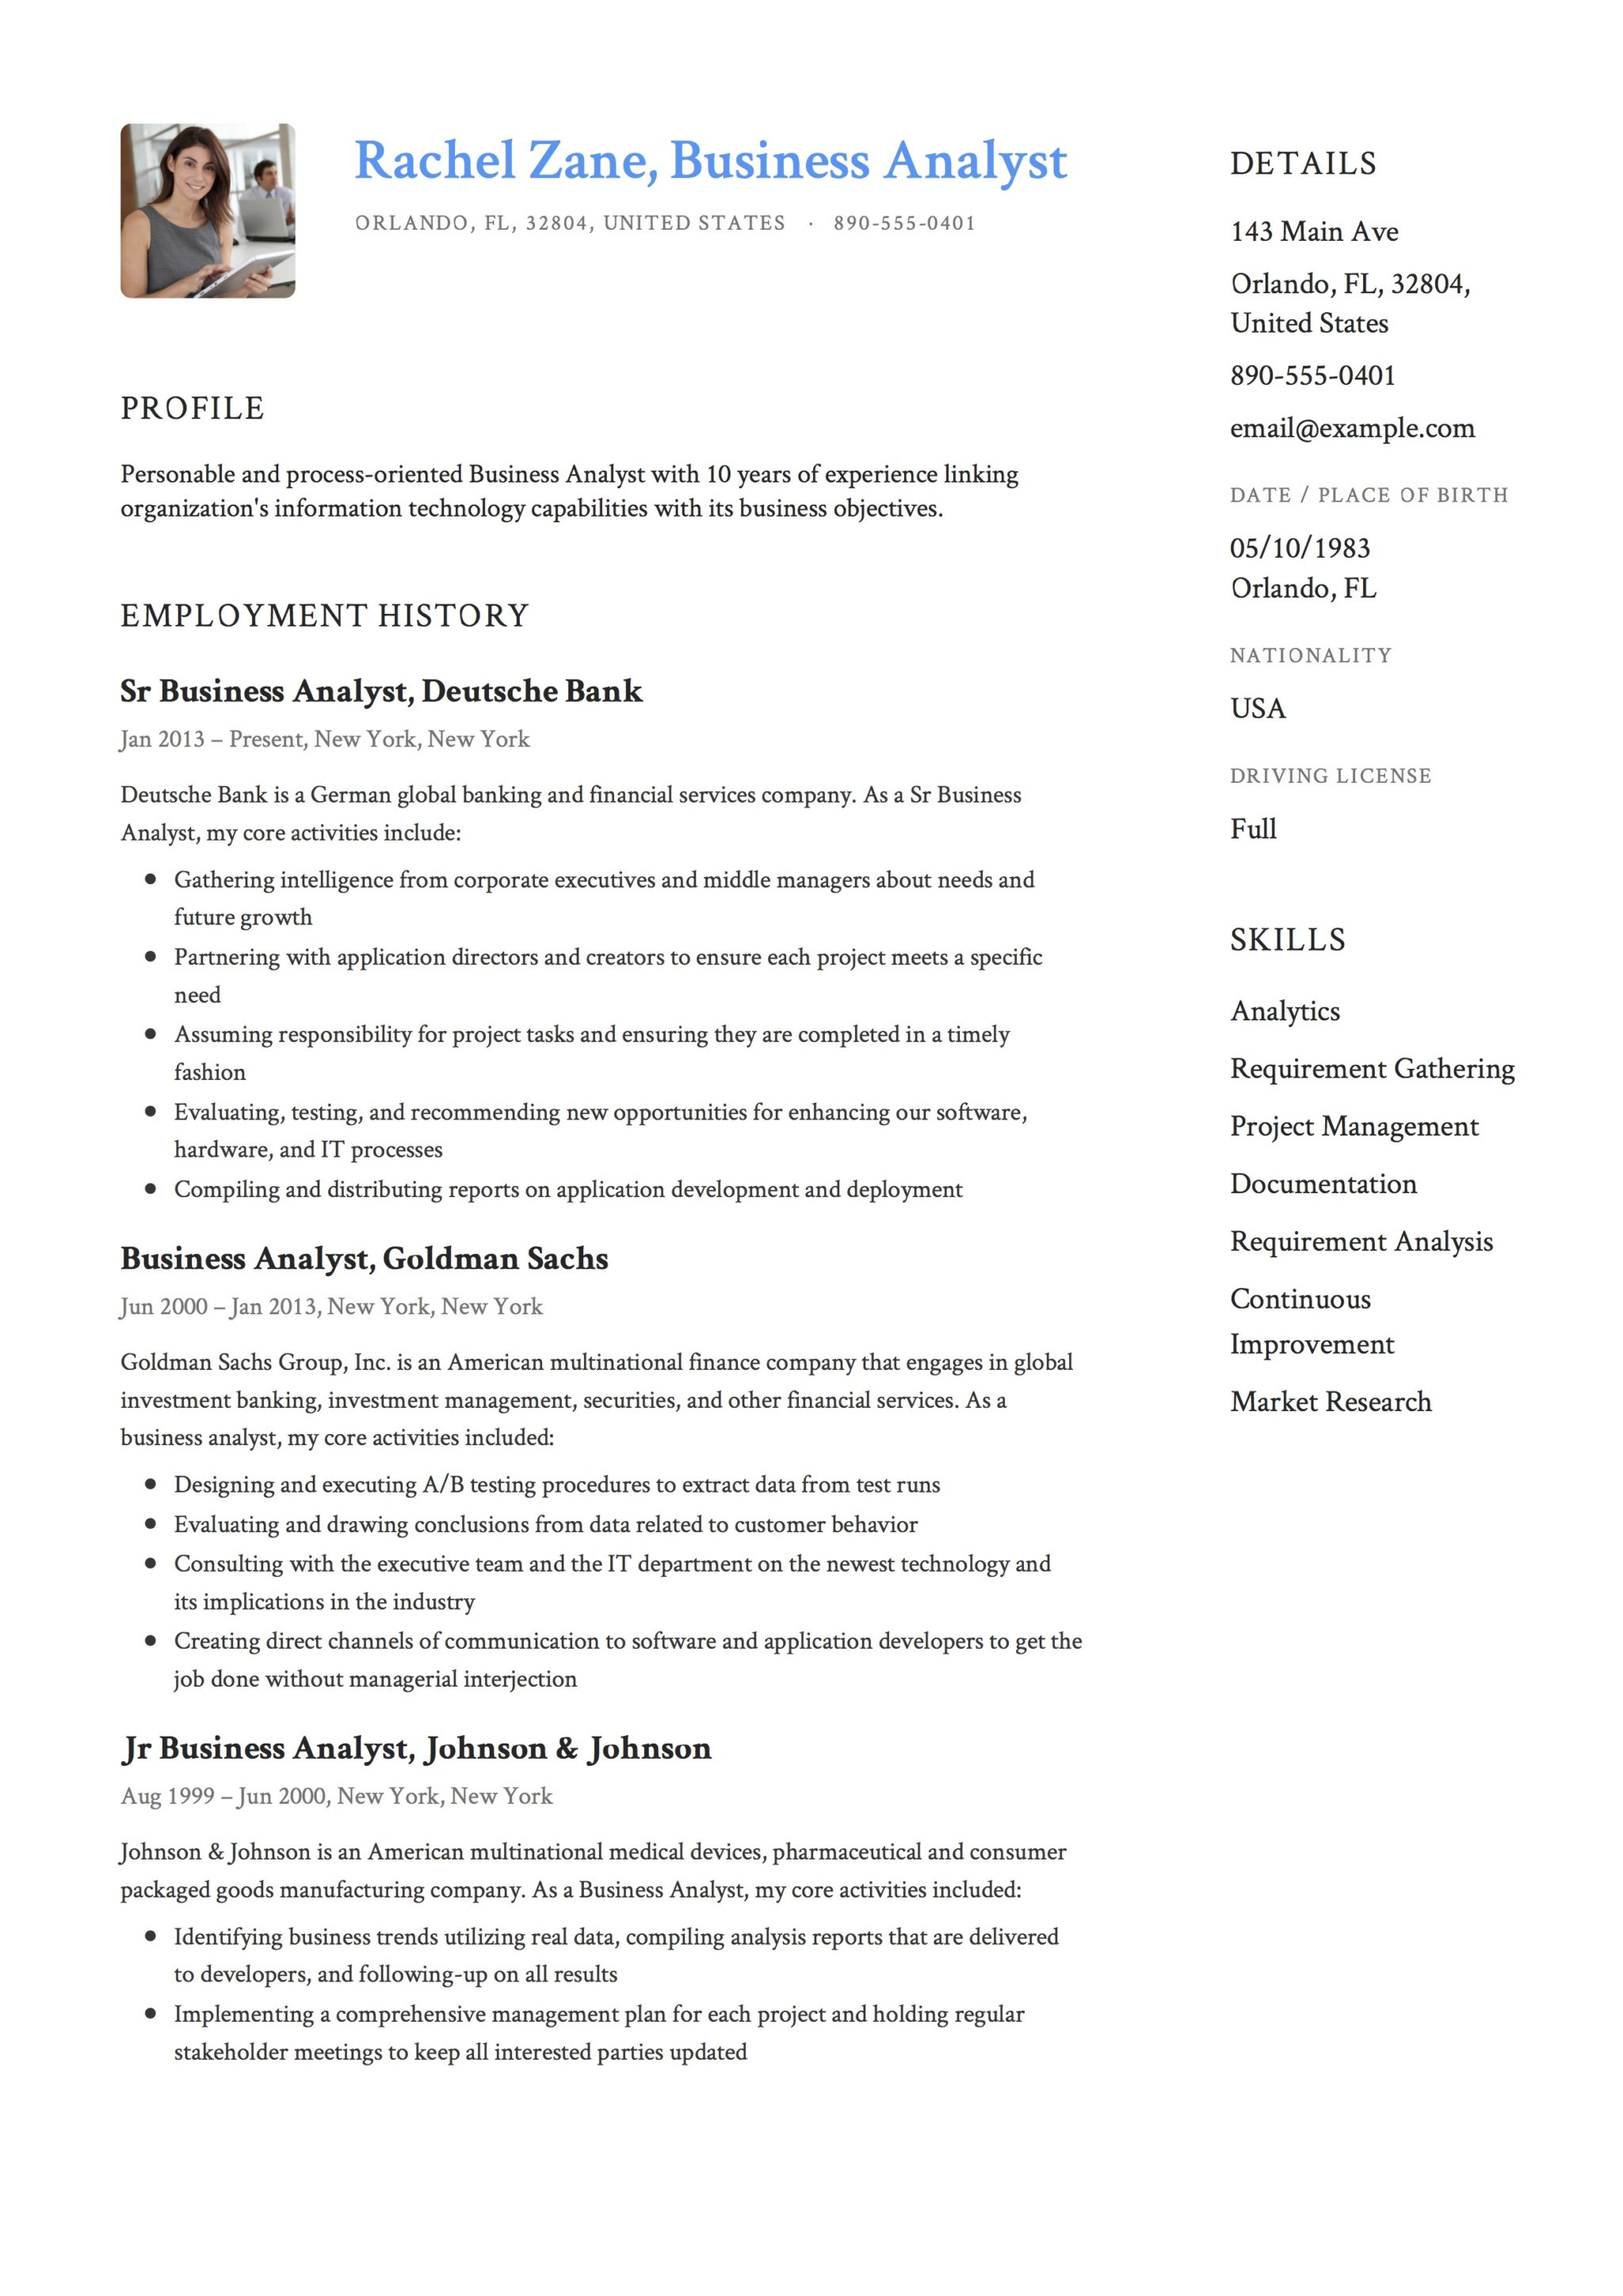 Business Analyst Resume SampleS   Free Downloads